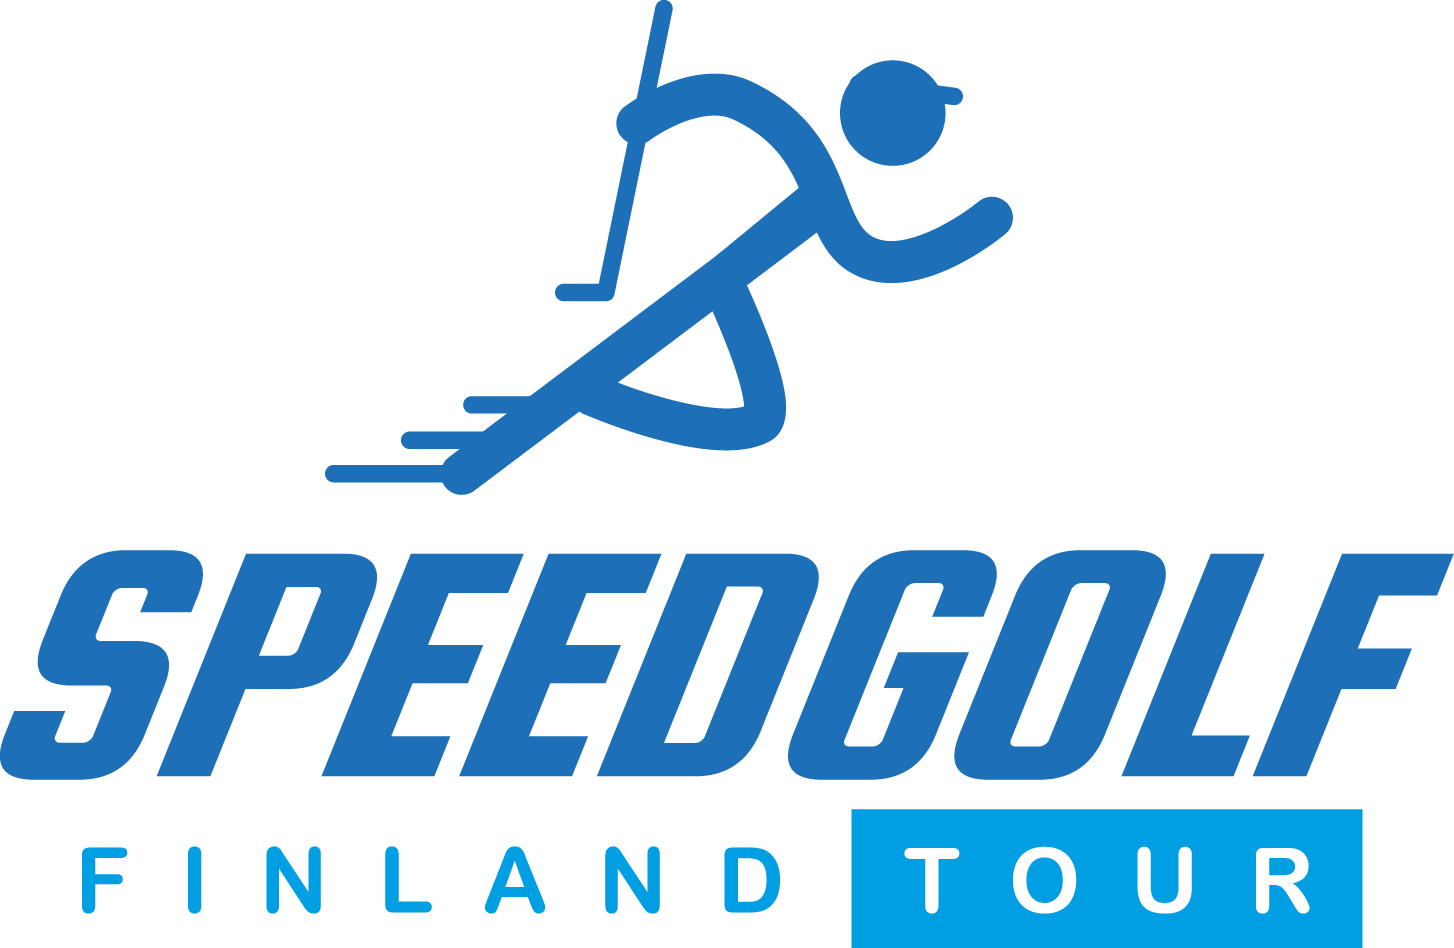 speedgolf_FI_TOUR_logo_blue